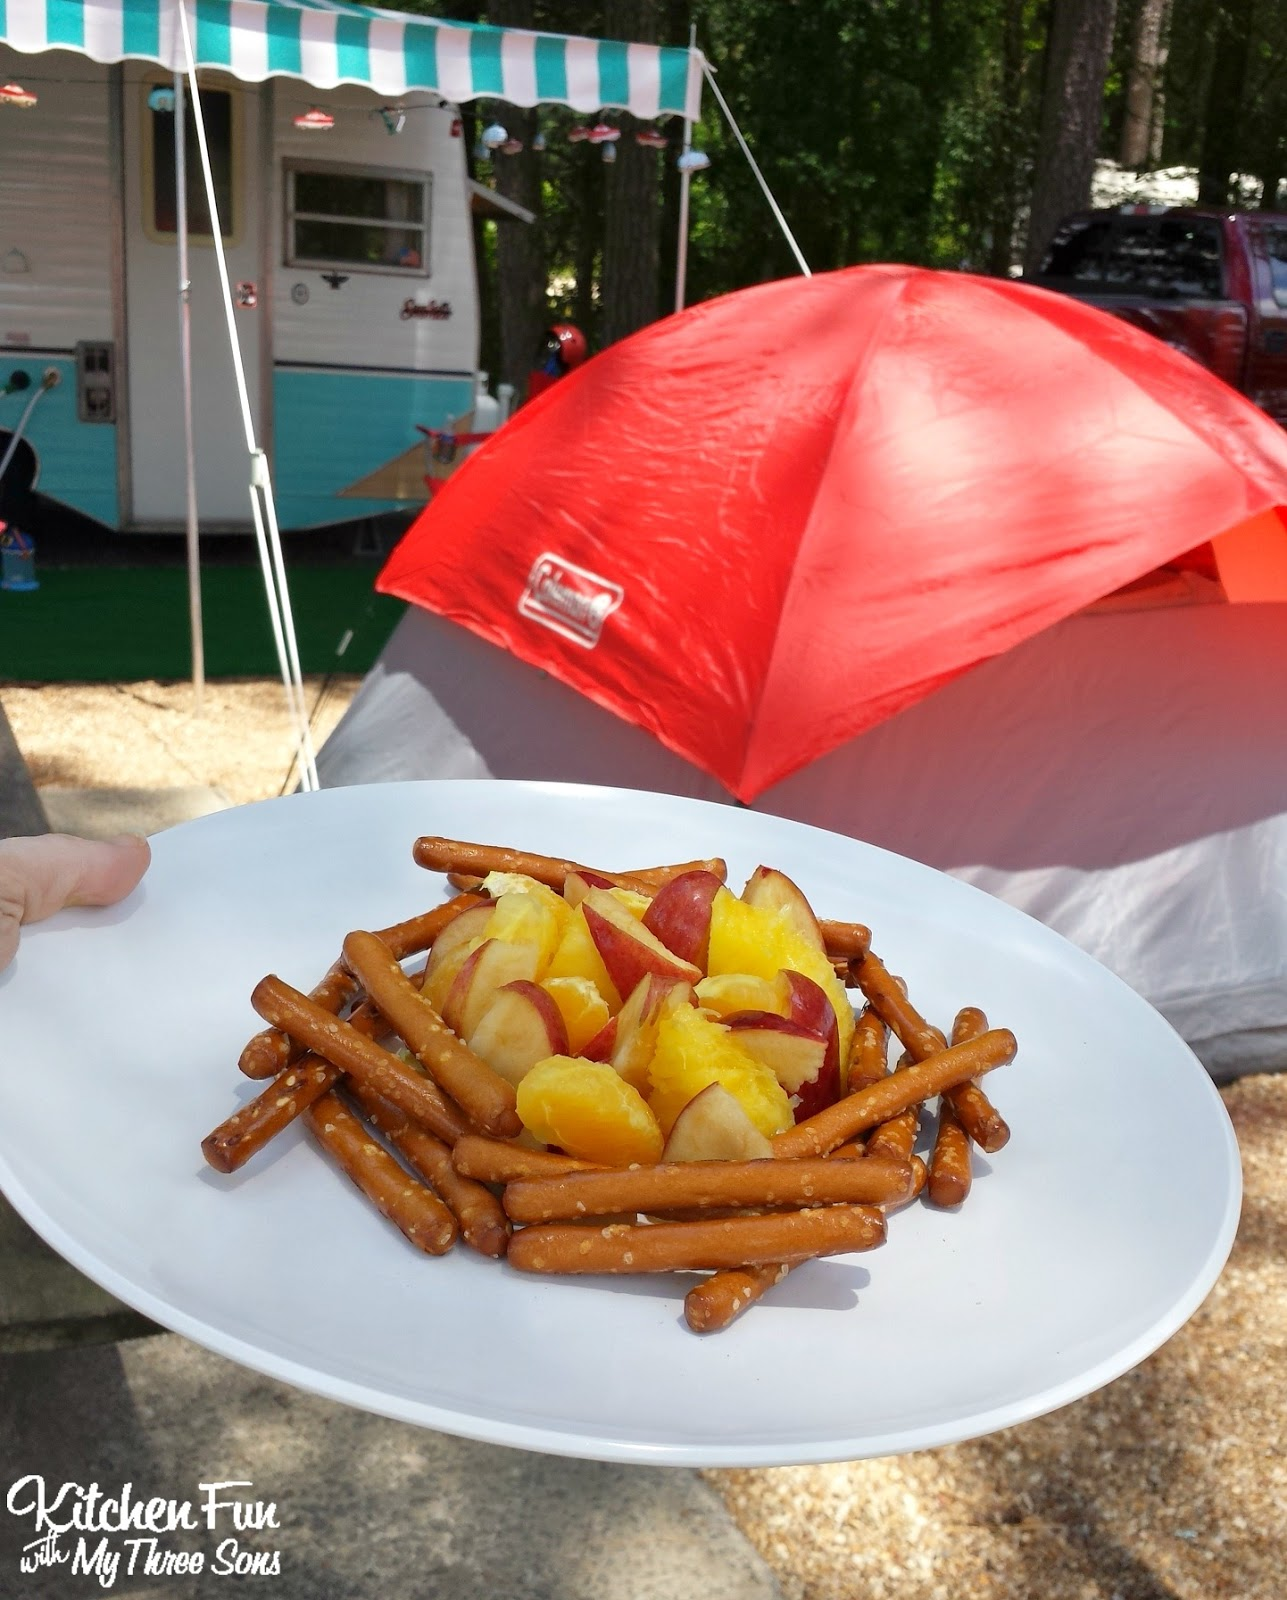 Healthy Camping Food Ideas Recipes: Fun Camping Ideas For Kids. Camping Recipes And Fun